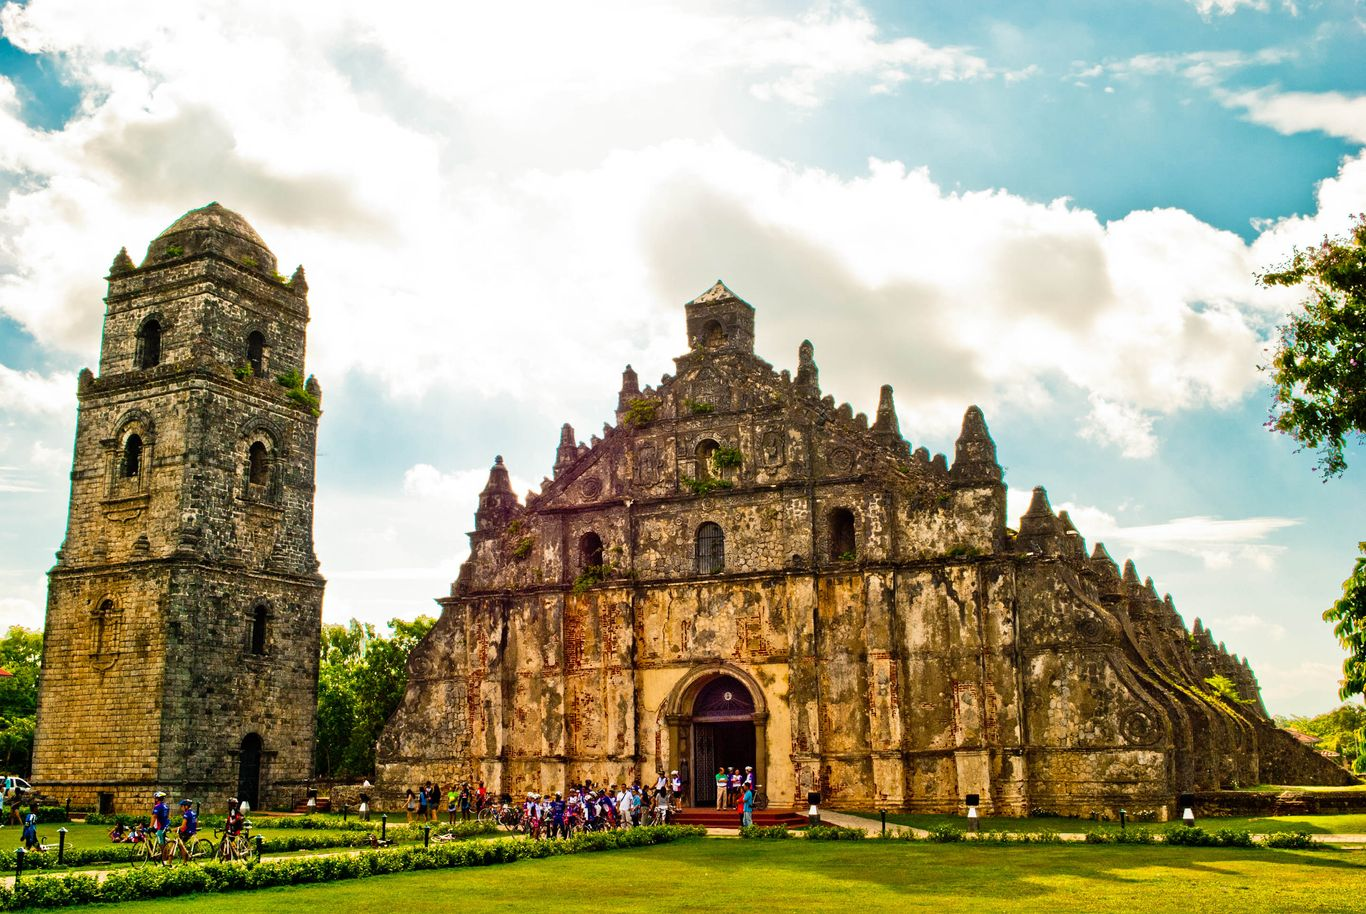 The facade and bell tower of the old stone church of Paoay, one of the UNESCO World Heritage Sites in the Philippines